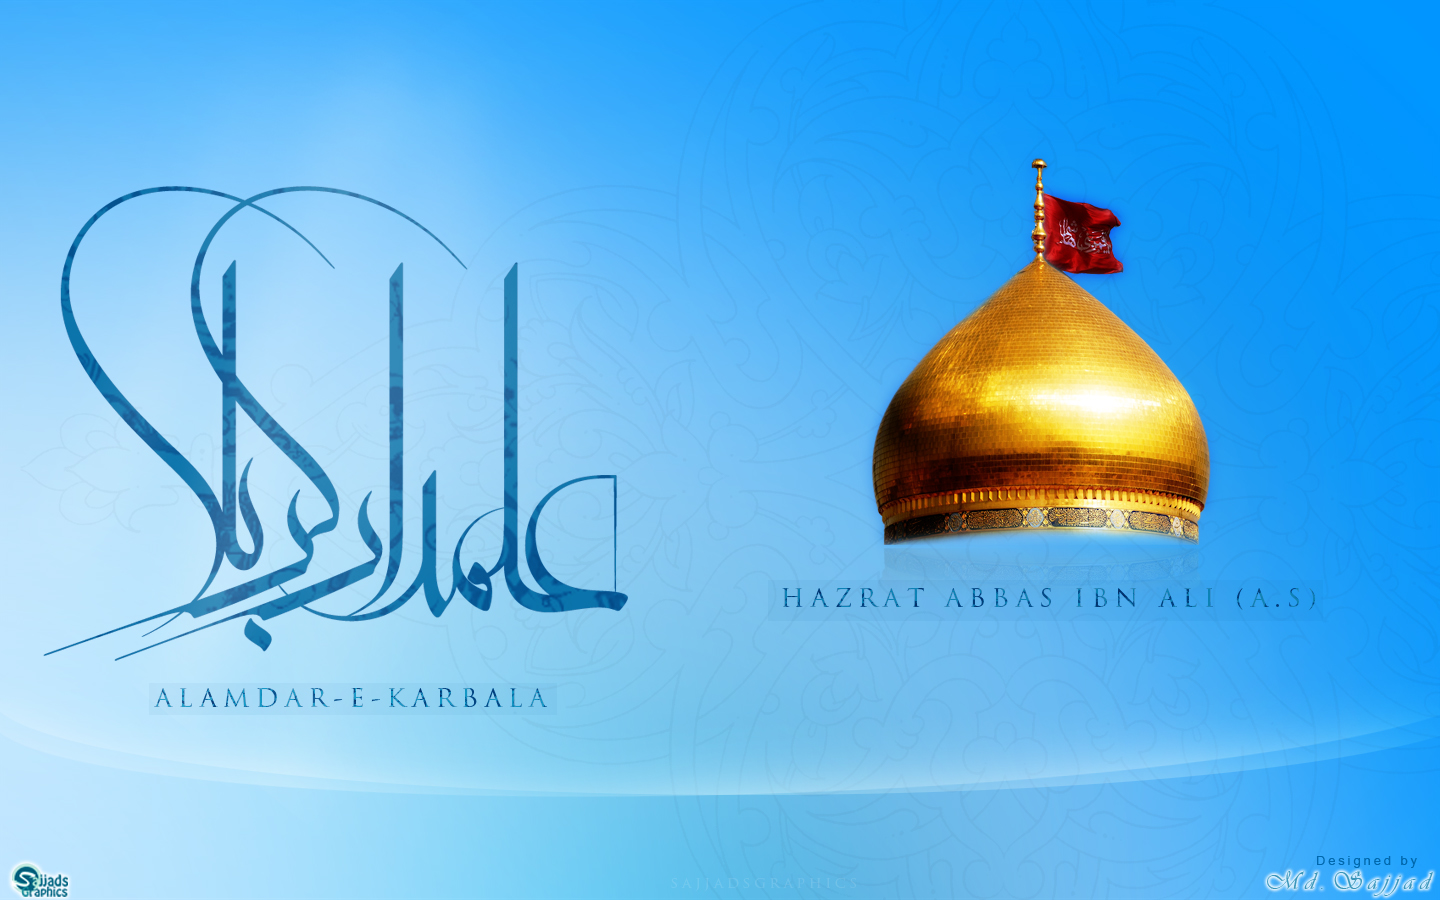 http://3.bp.blogspot.com/_2NyqDBUi8qA/TMUsbyA3KdI/AAAAAAAAAFo/UPqd0UTBDKY/s1600/Hazrat_Abbas_as_Windows7_wallpaper_by_SajjadsGraphics%5B1%5D.jpg